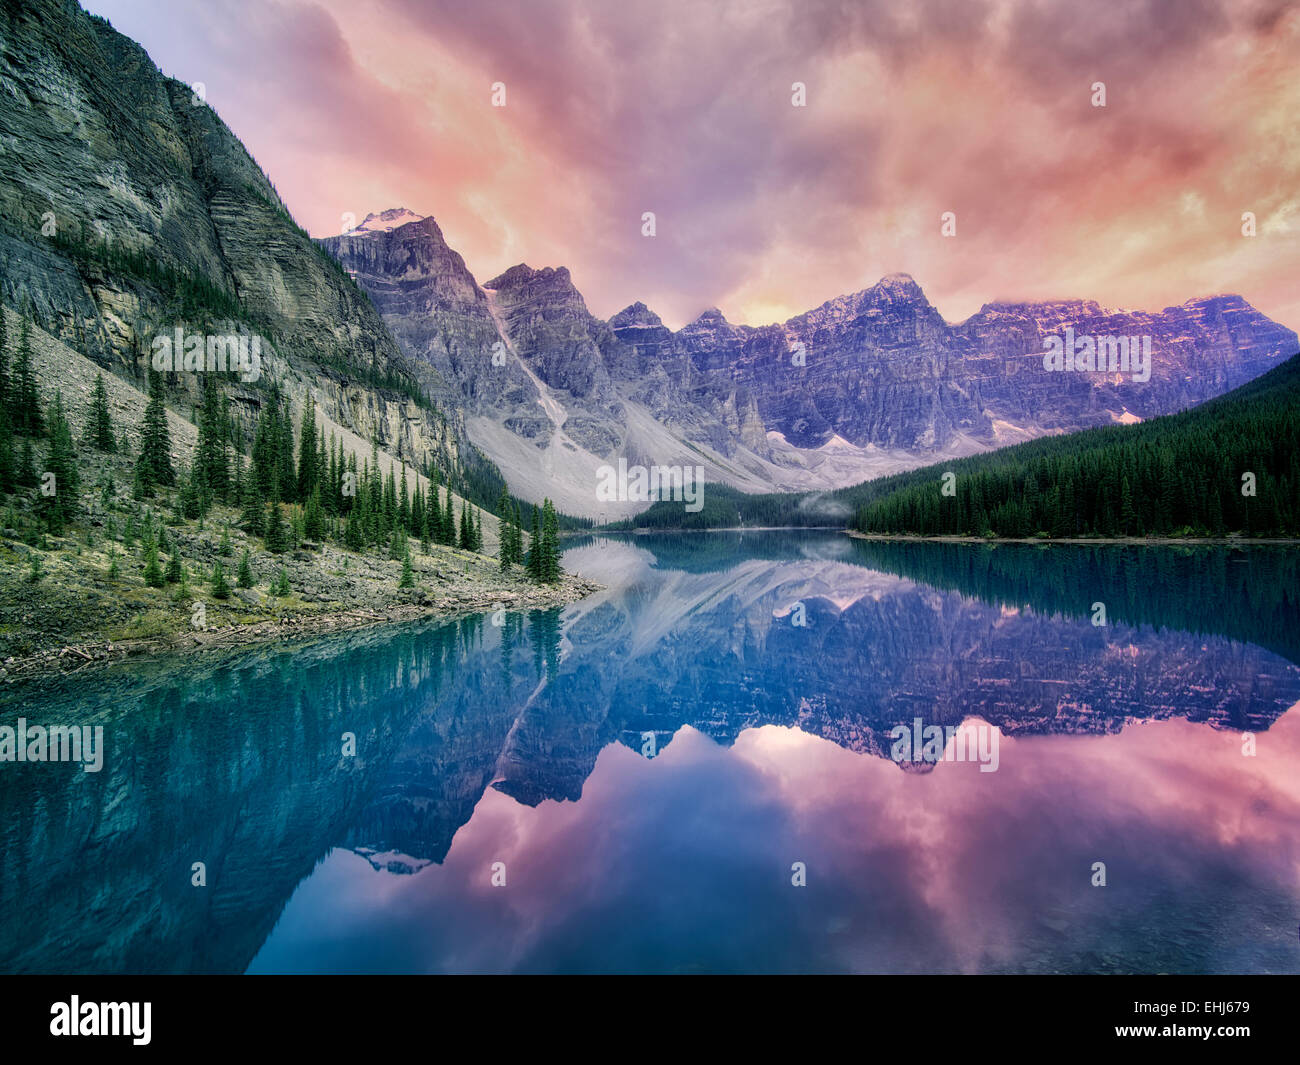 Le Lac Moraine avec coucher de nuages. Le Parc National de Banff, Canada Photo Stock